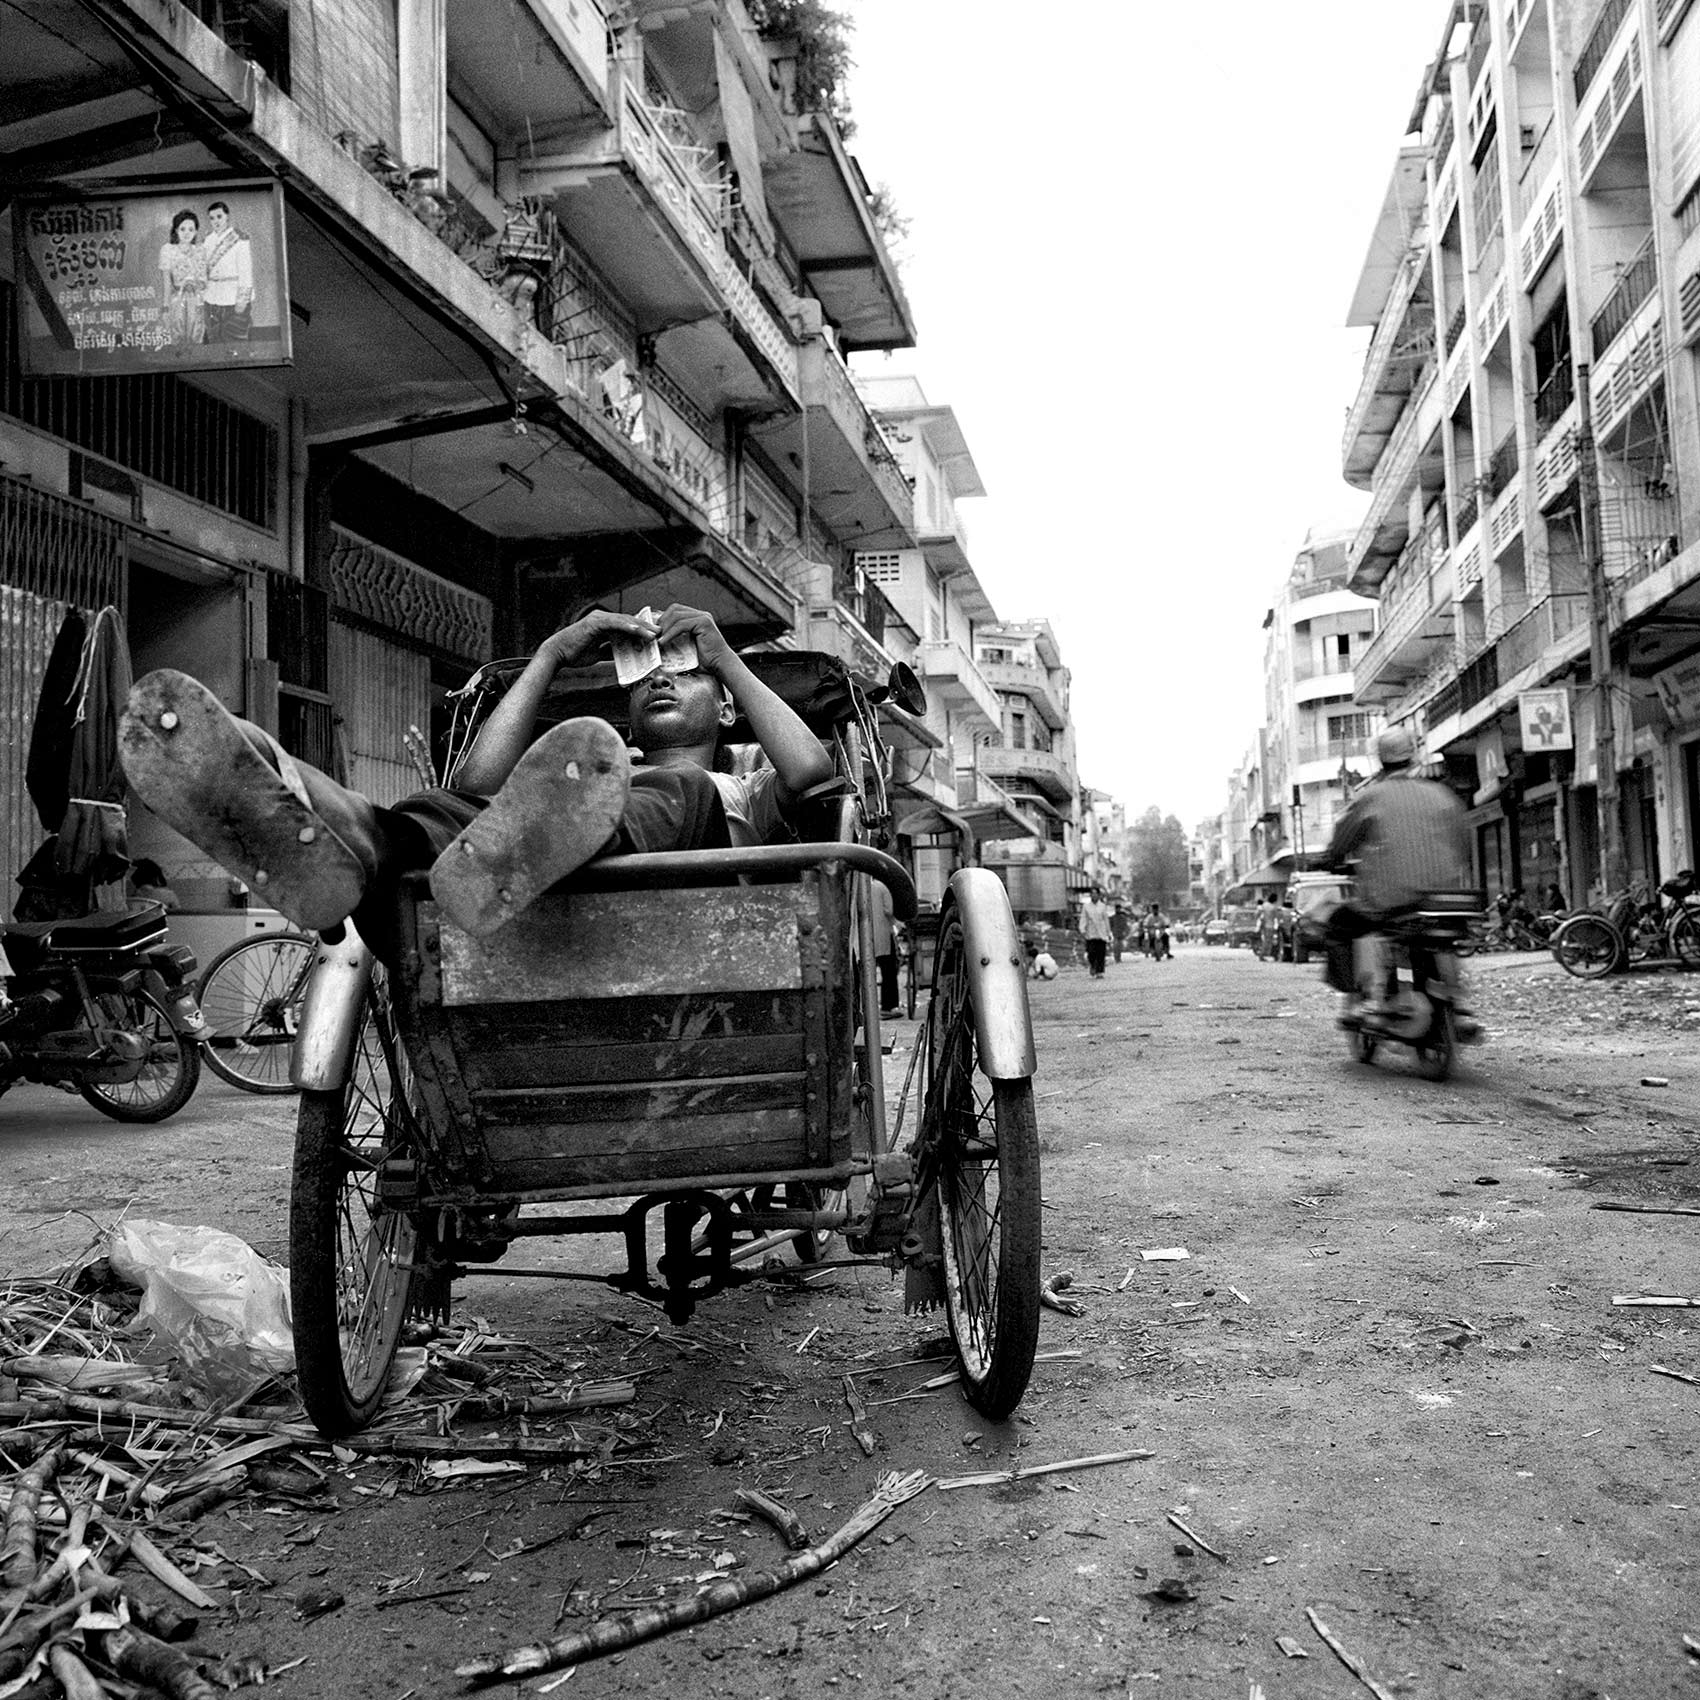 a-young-boy-takes-a-break-as-he-rests-inside-his-bicycle-taxi-in-phnom-penh-cambodia